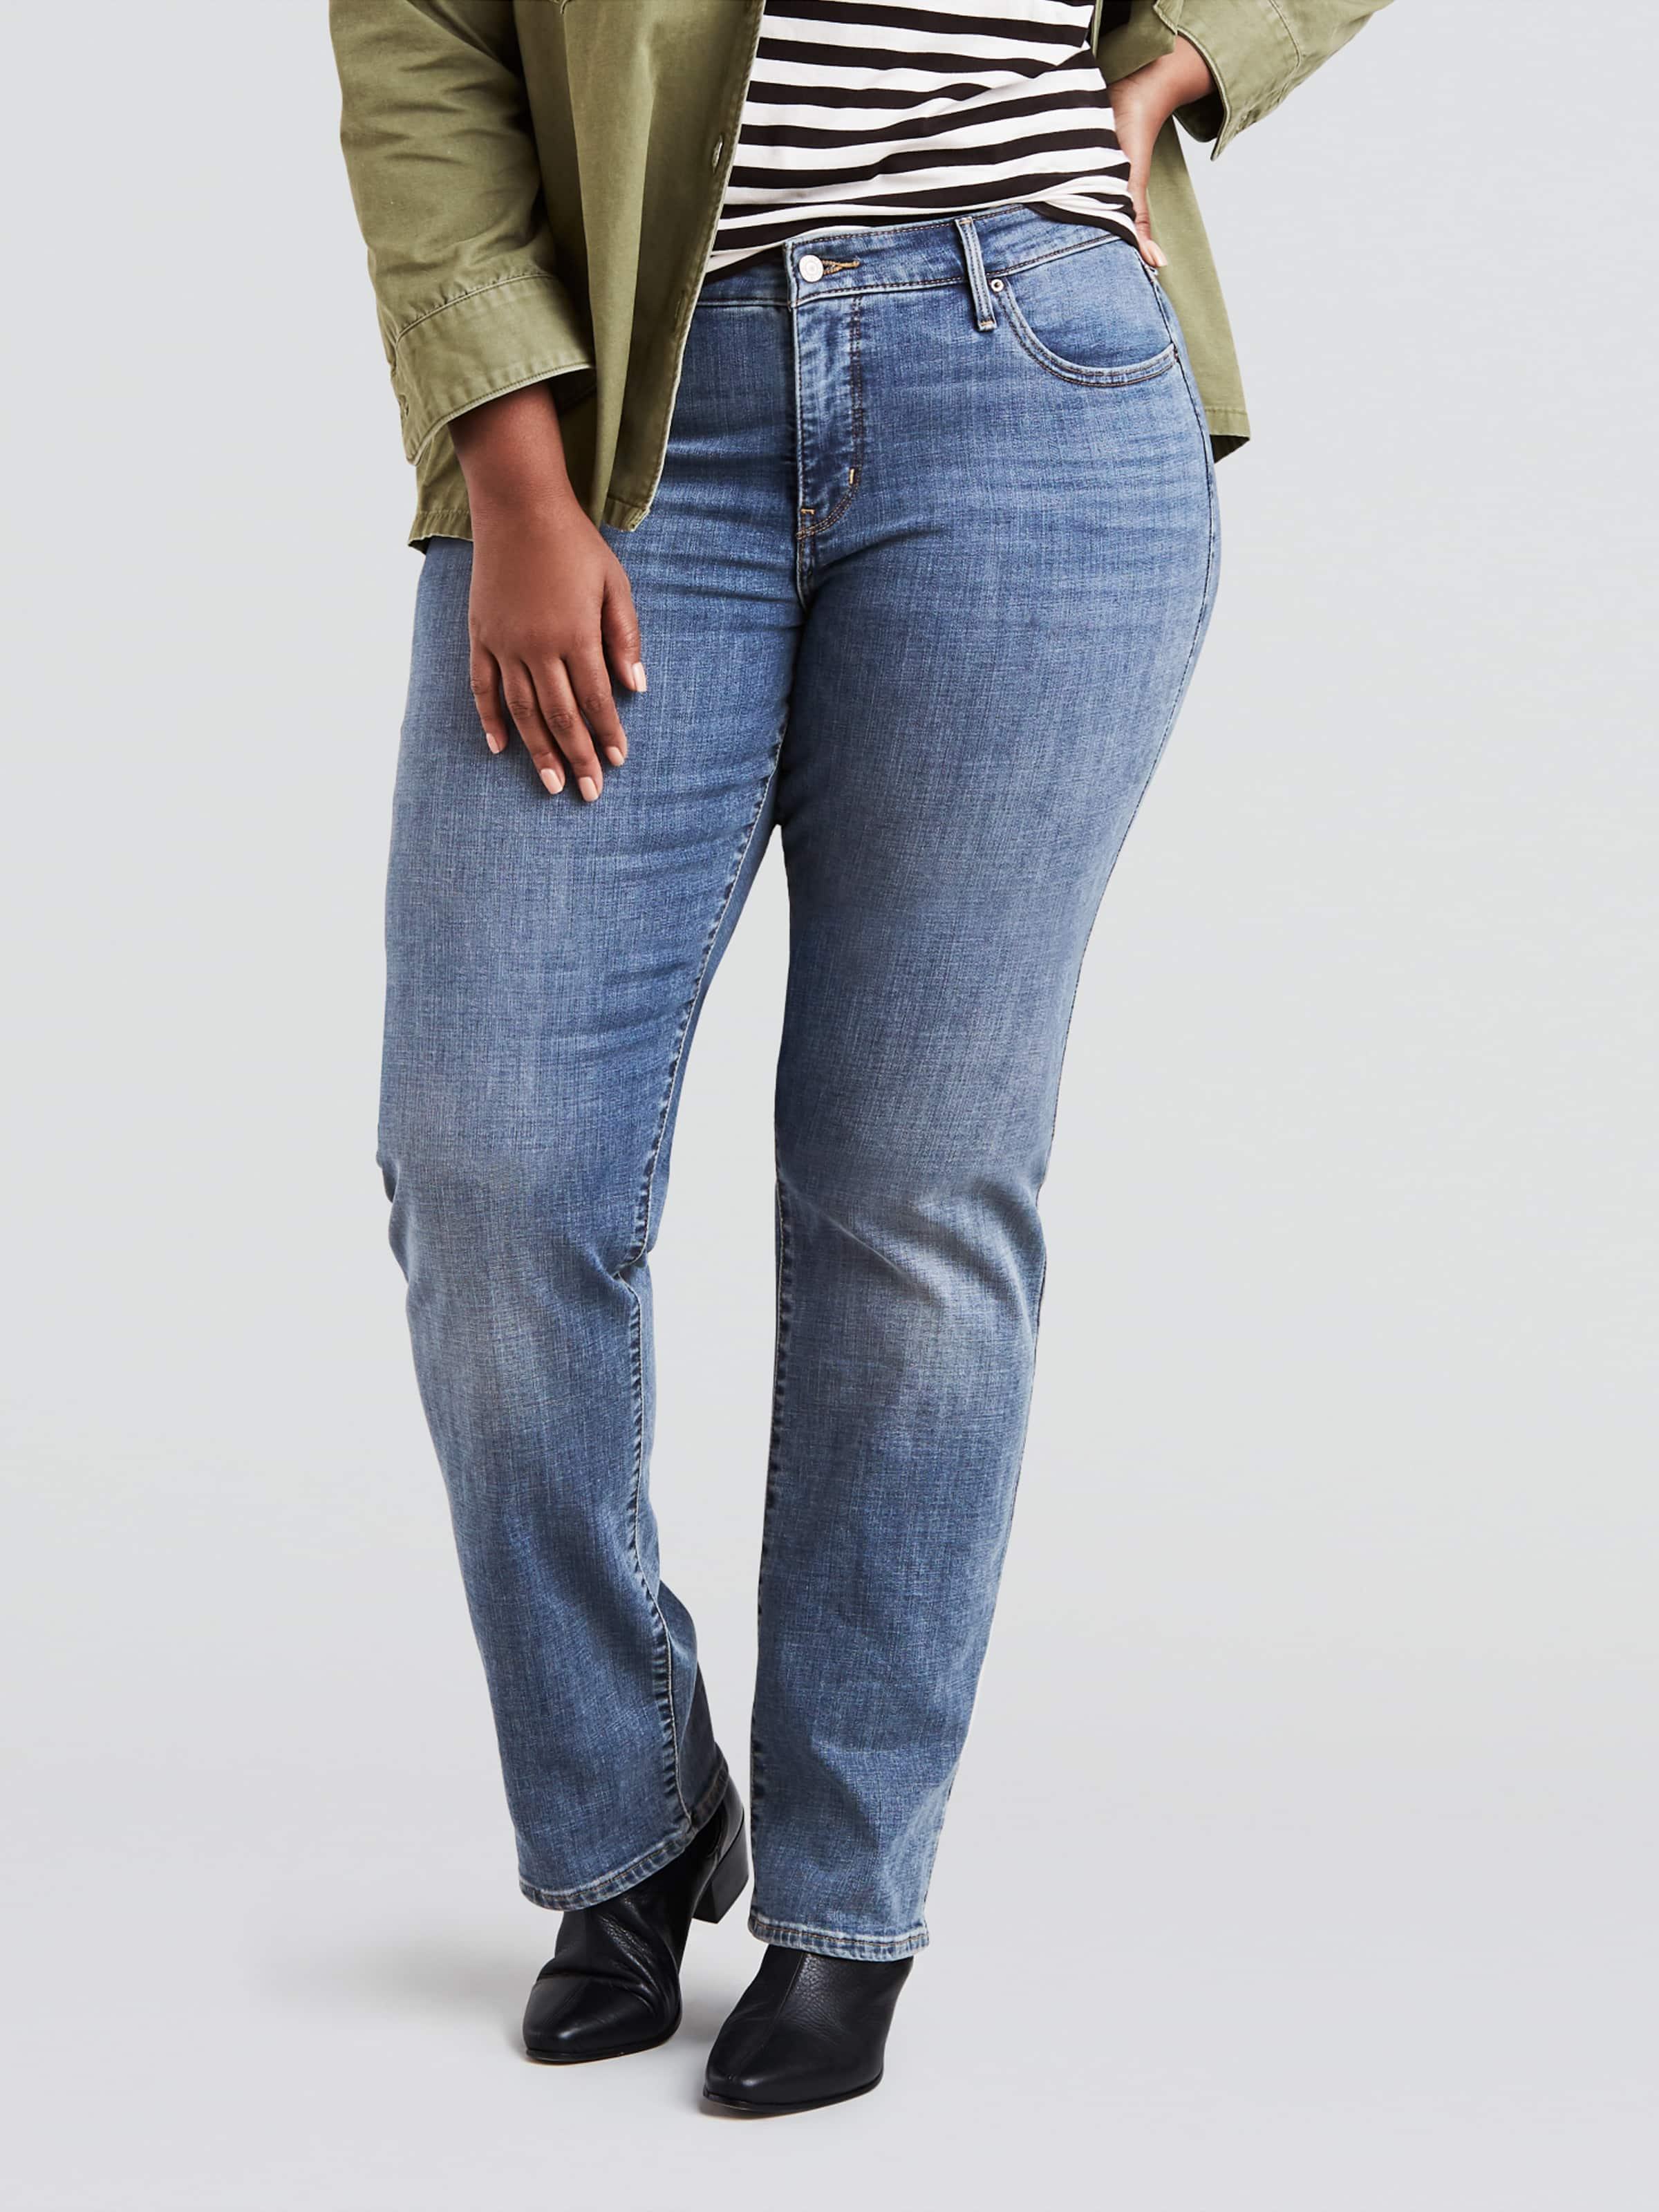 43a2d6c13e3 Image for Levis 311 Plus Straight In Indigo Anomaly from Just Jeans ...